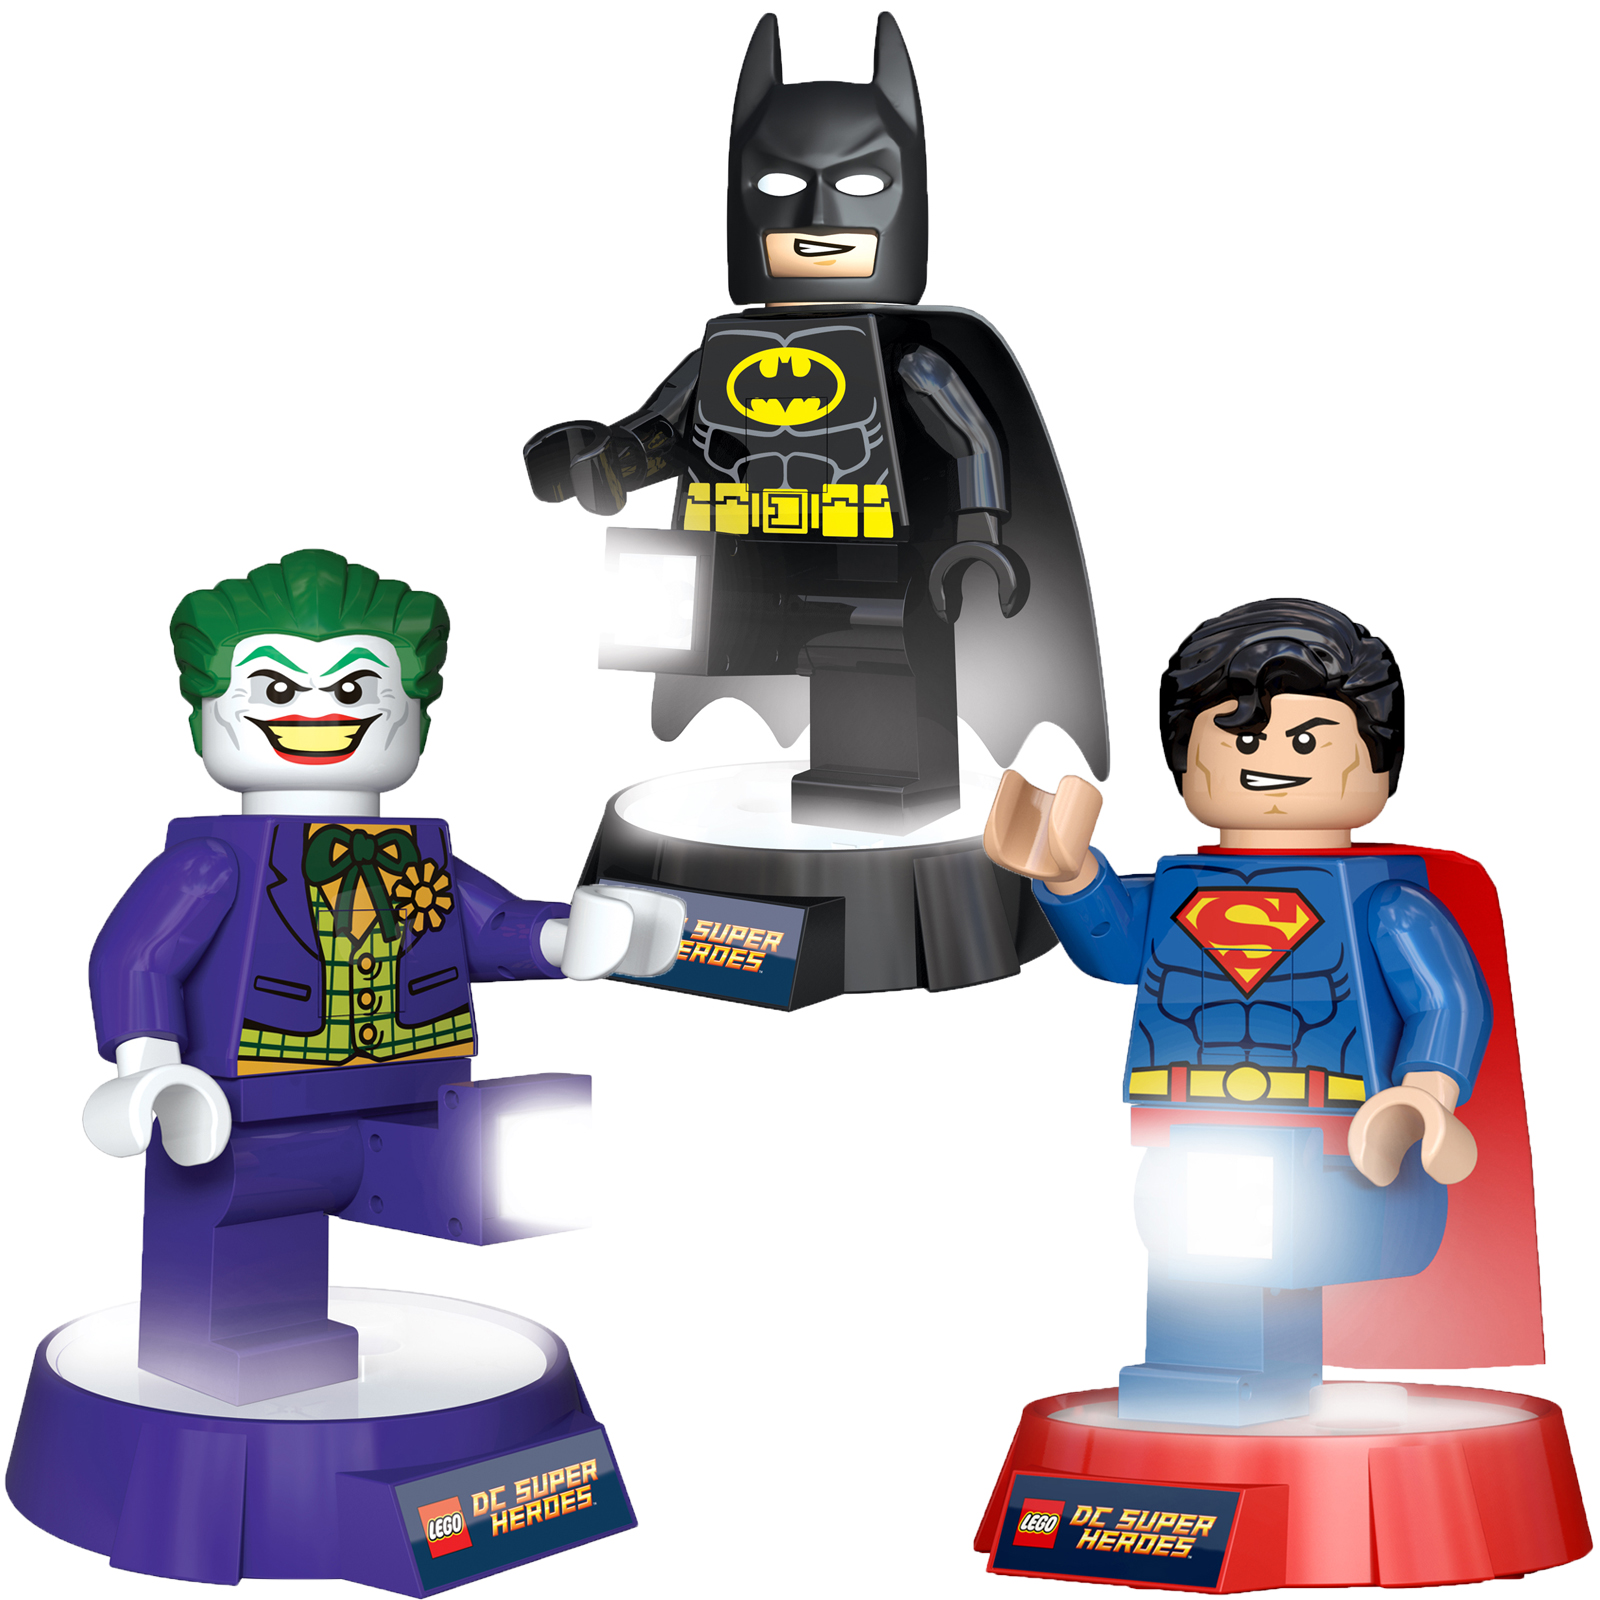 Lampada Batman Lampada Lego Superman Réveil Lego Superman Papel De